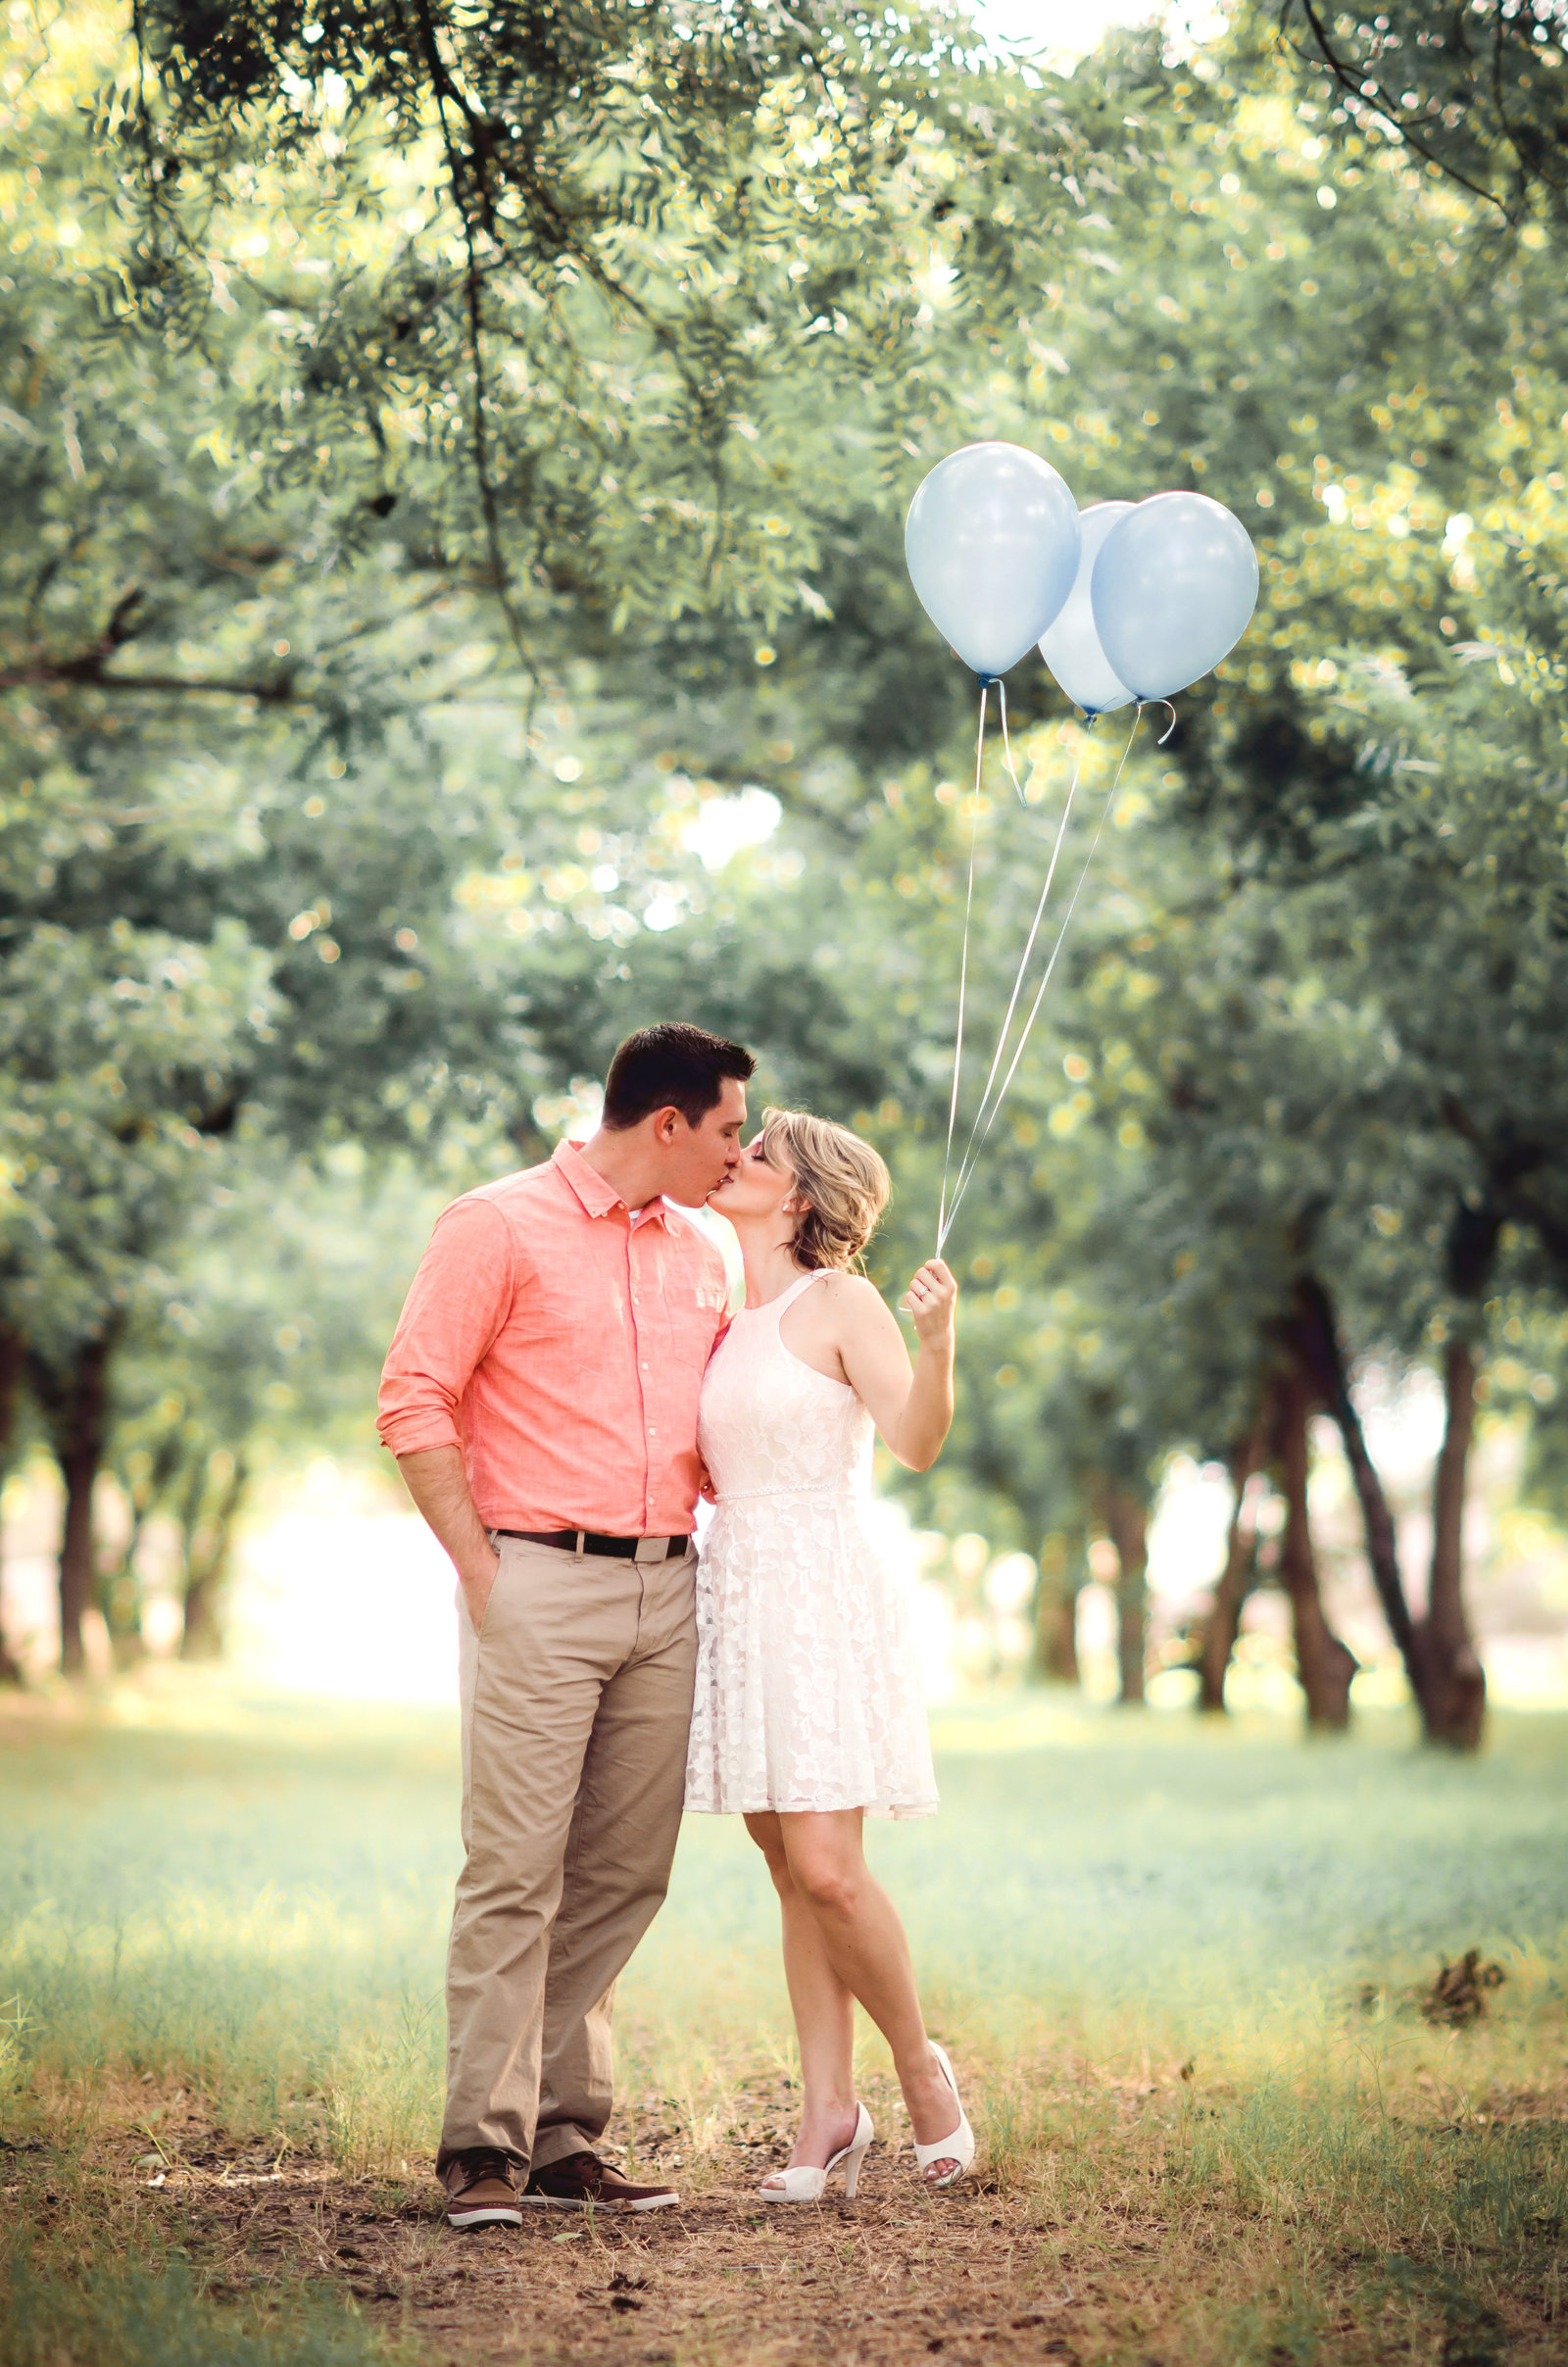 Tucson Pecan Orchard Engagement photo of bride and groom to be